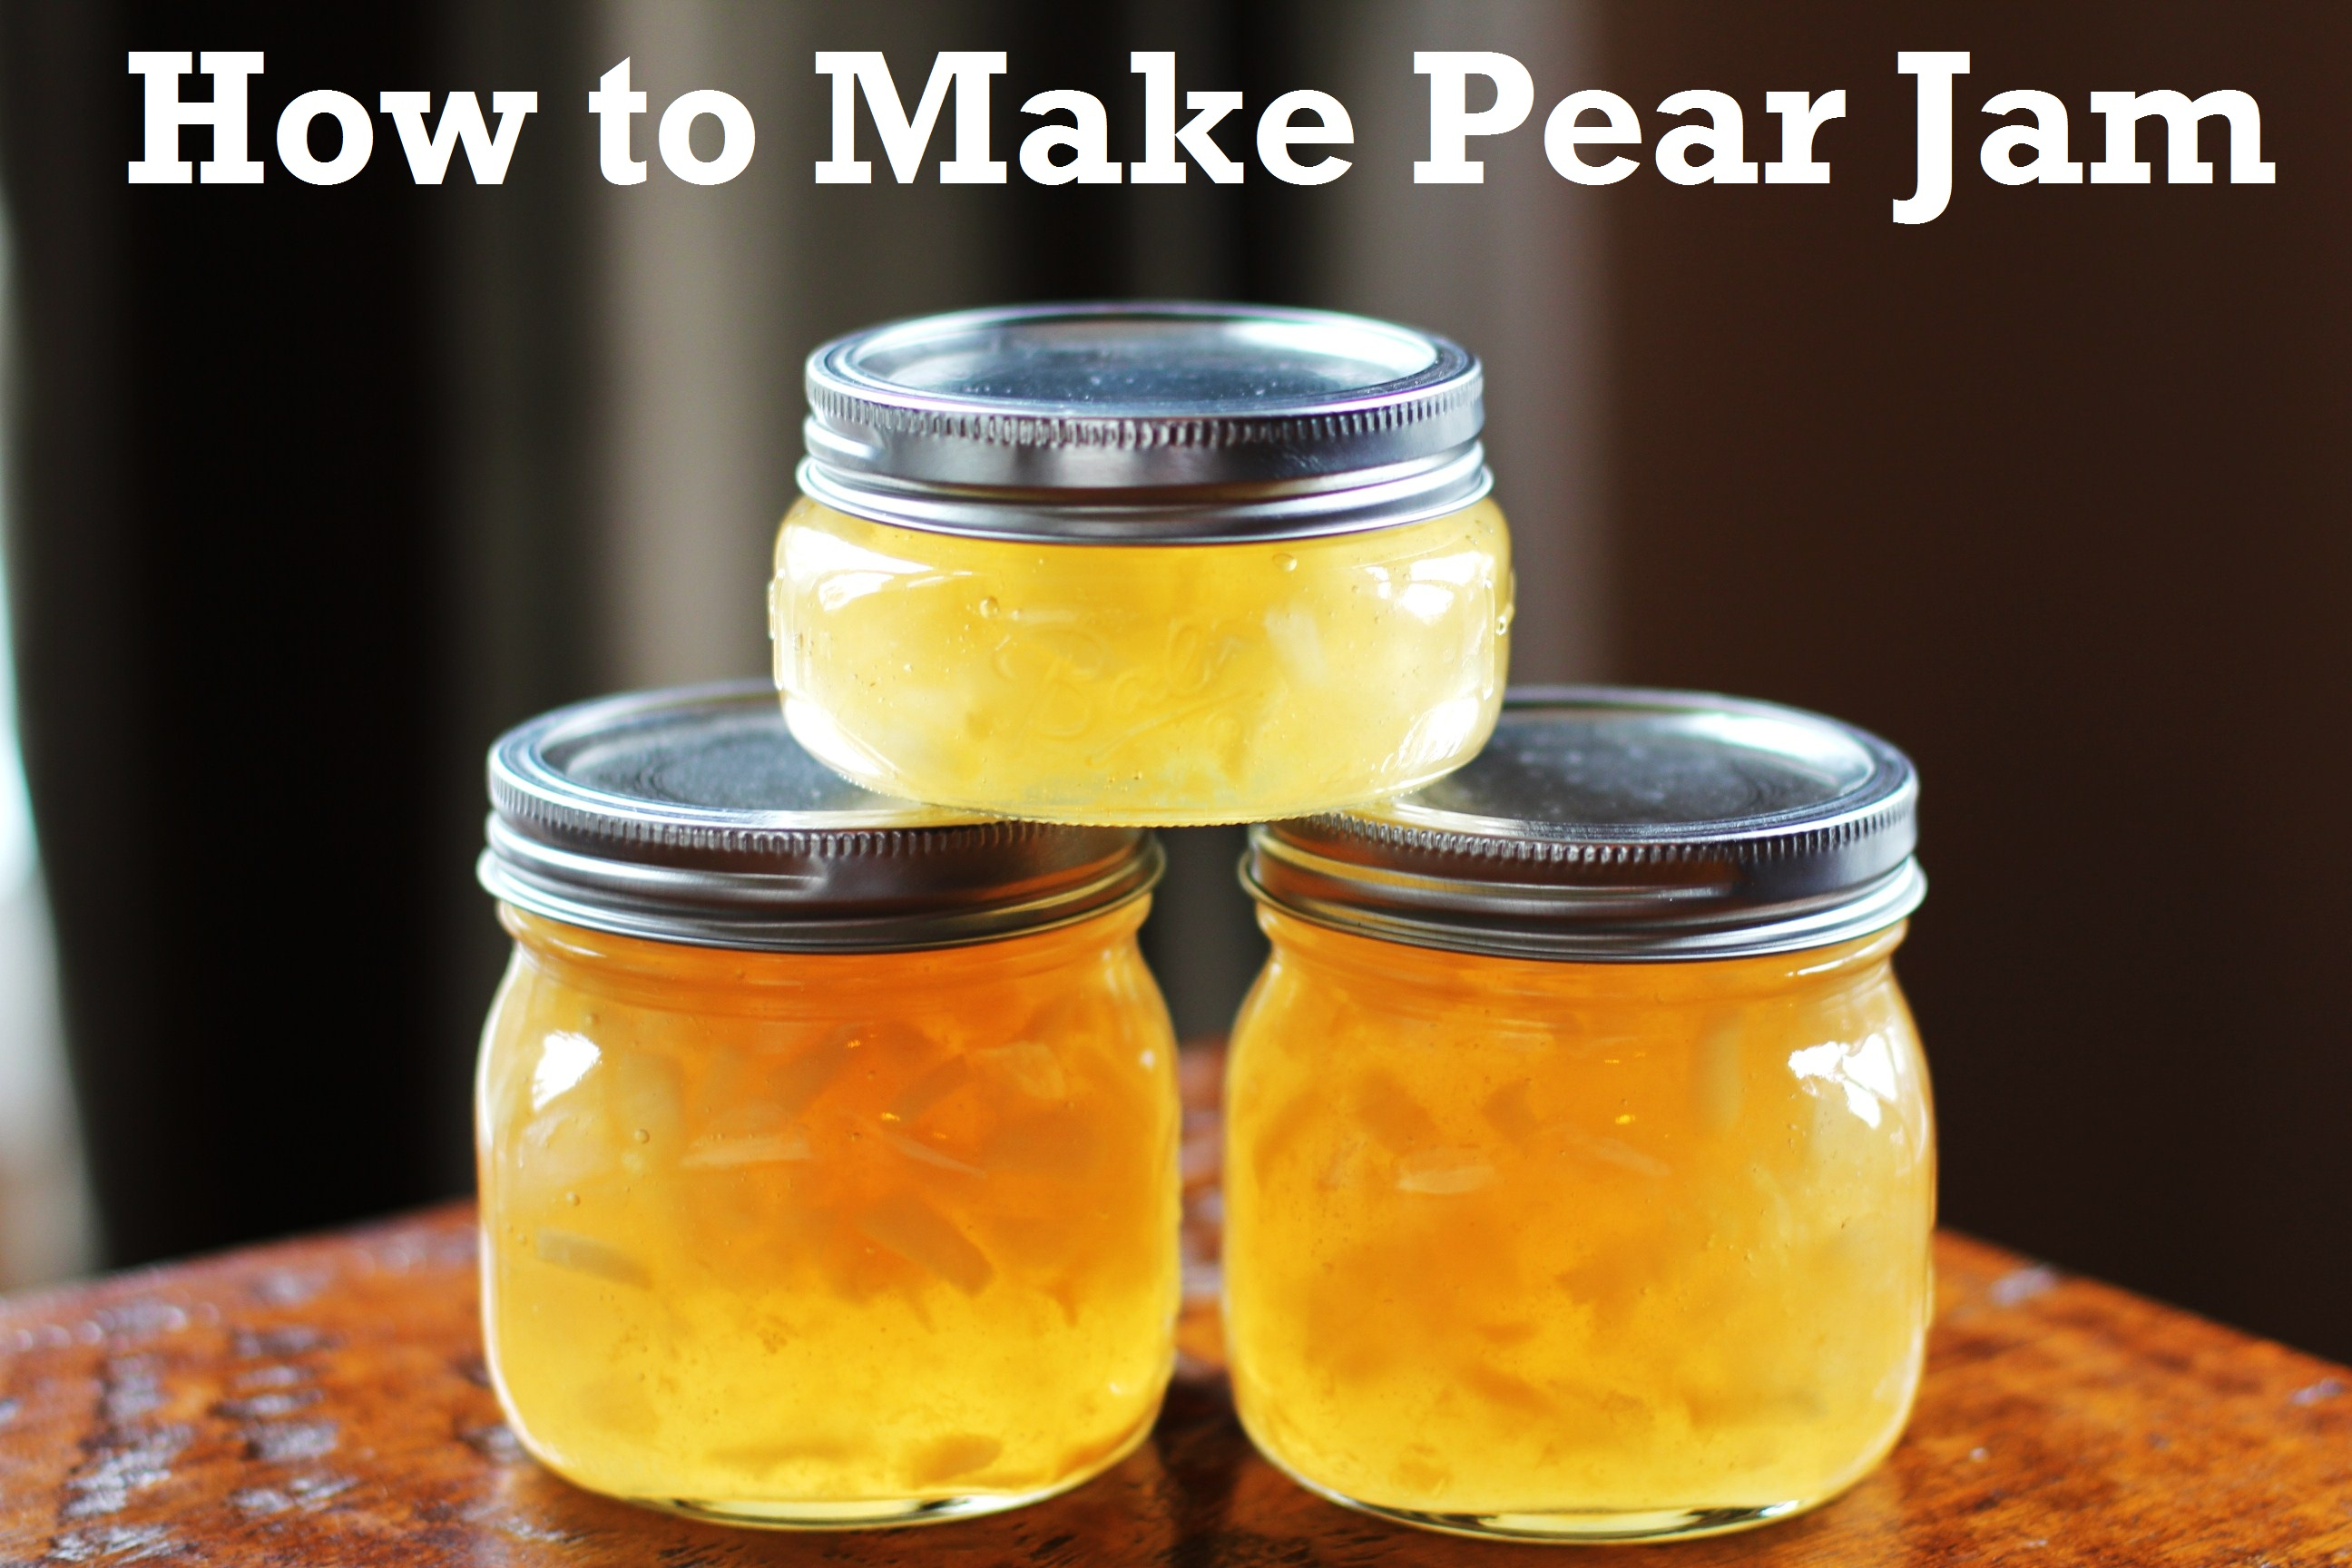 Canning 101: How to Make Pear Jam